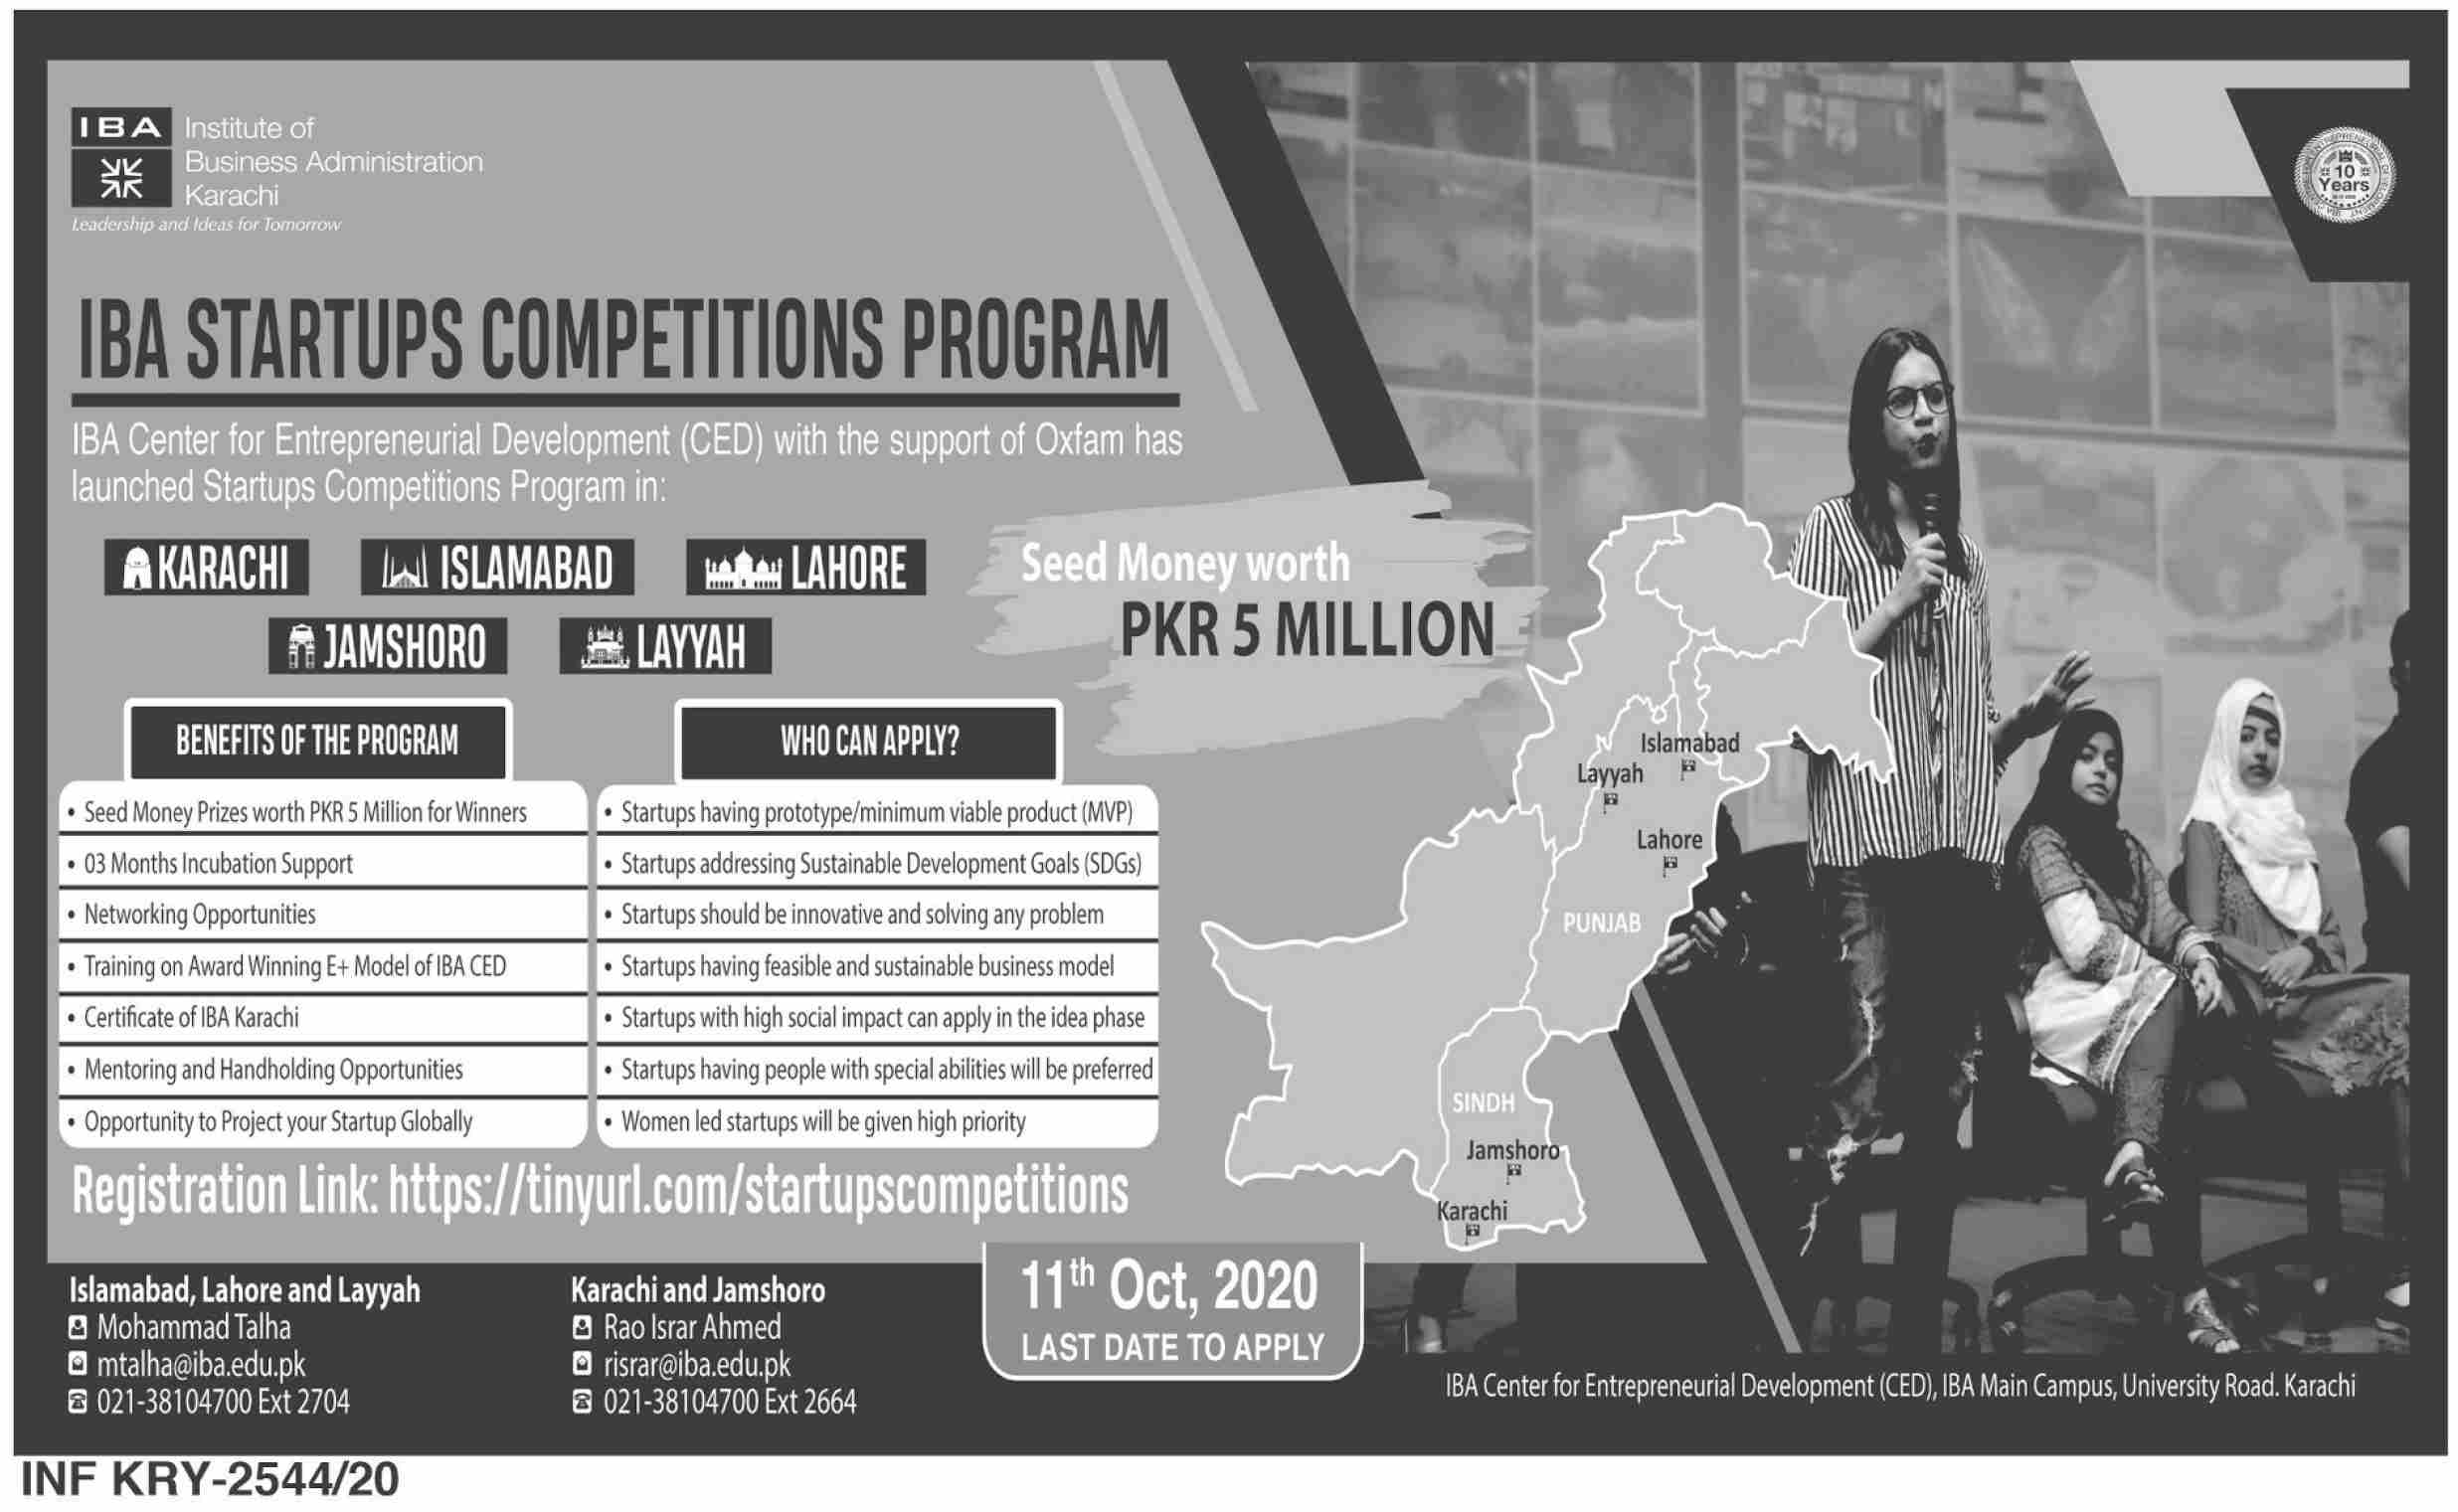 IBA Startups competition program